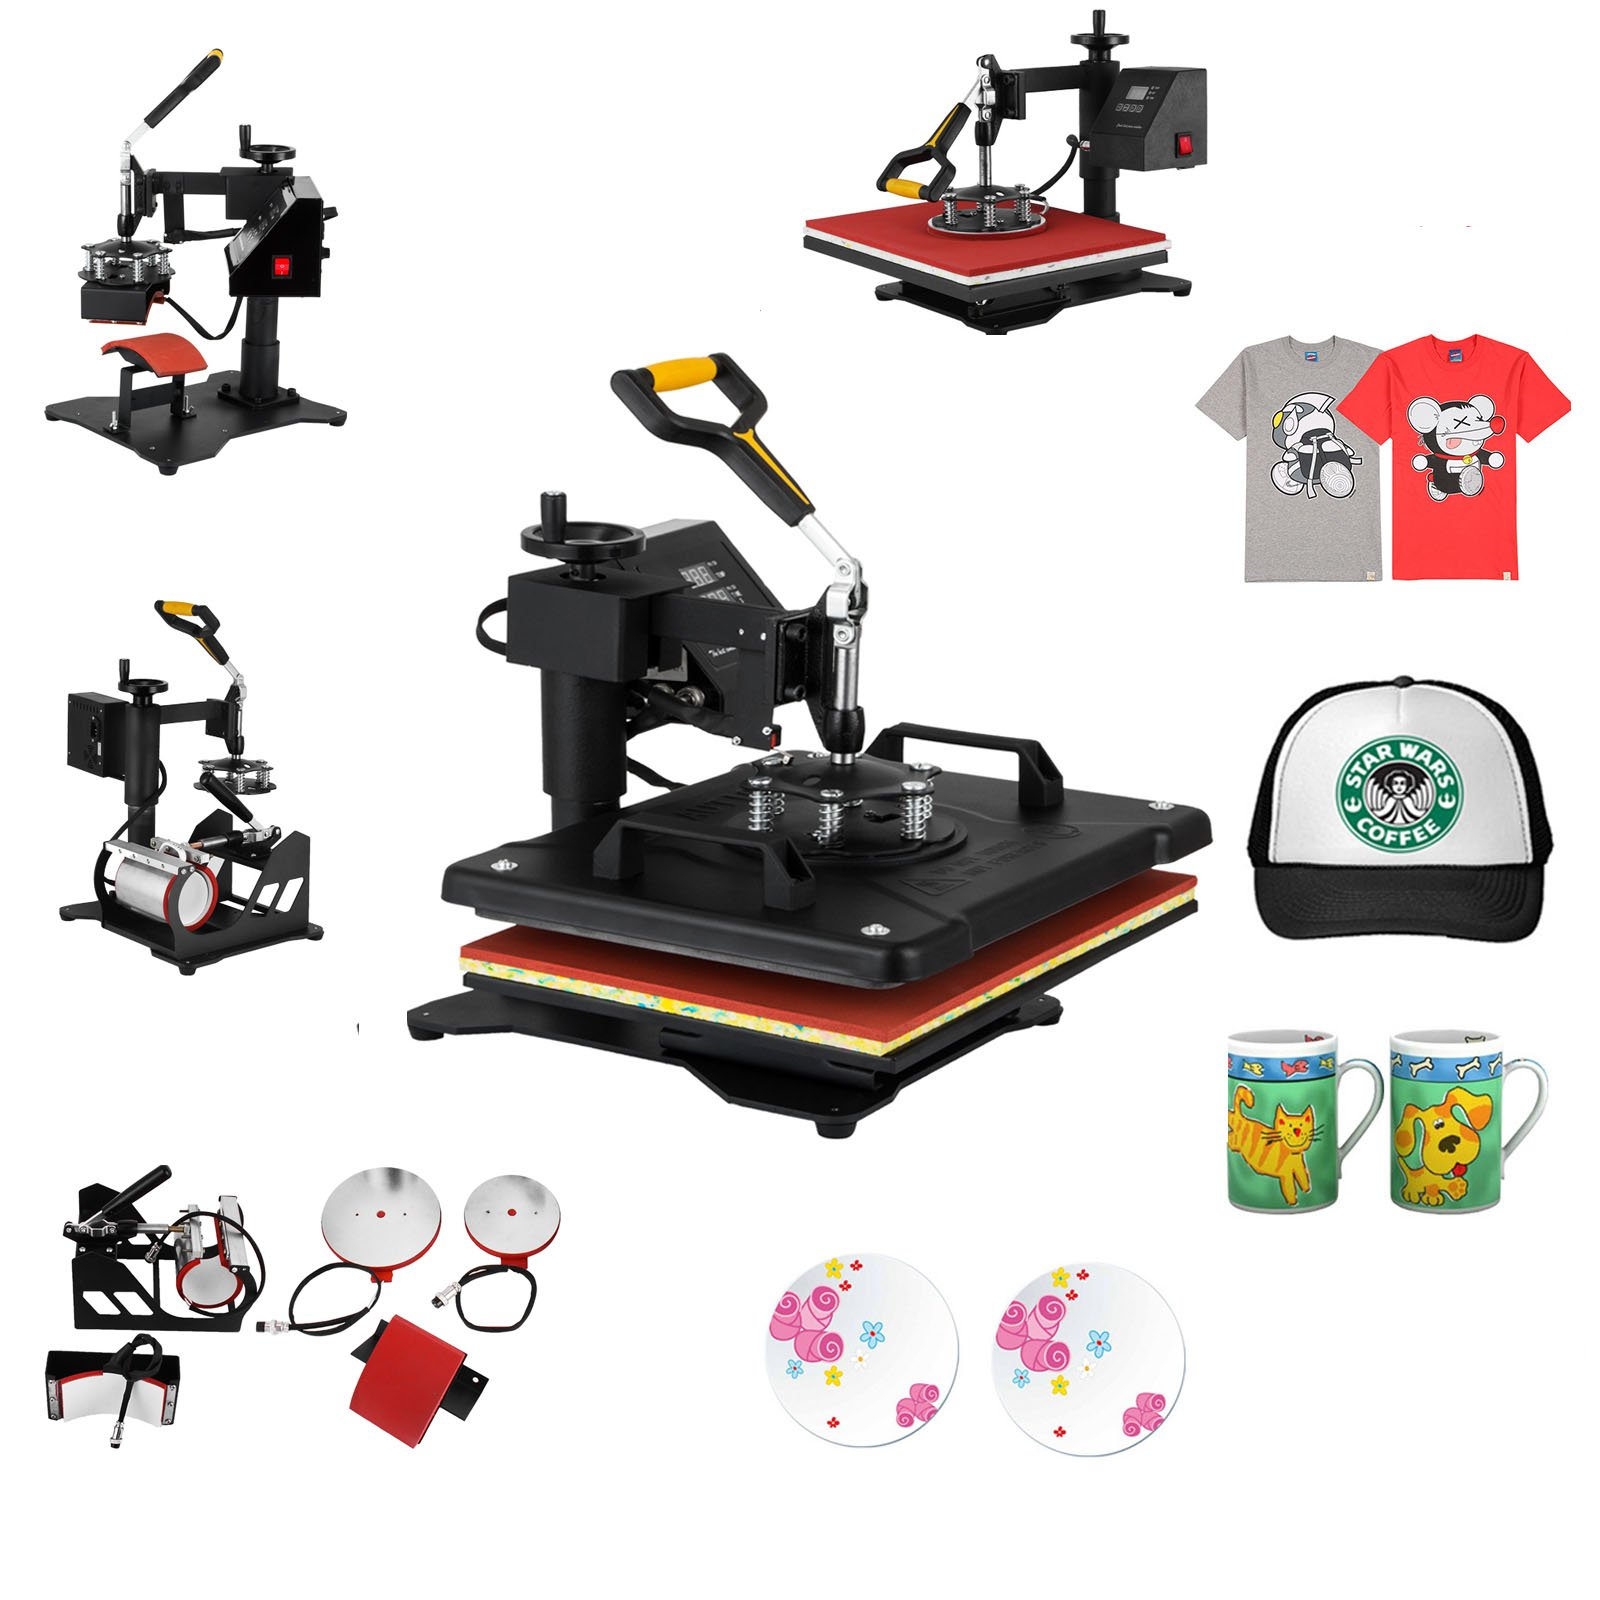 Mophorn Heat Press 12 X 15 Inch 5 in 1 Desktop Iron Baseball Hat Press Dual Digital Transfer Sublimation Multifunction Heat Press Machine Swing Away Design (12 by 15 Inch 5 in 1) by Mophorn